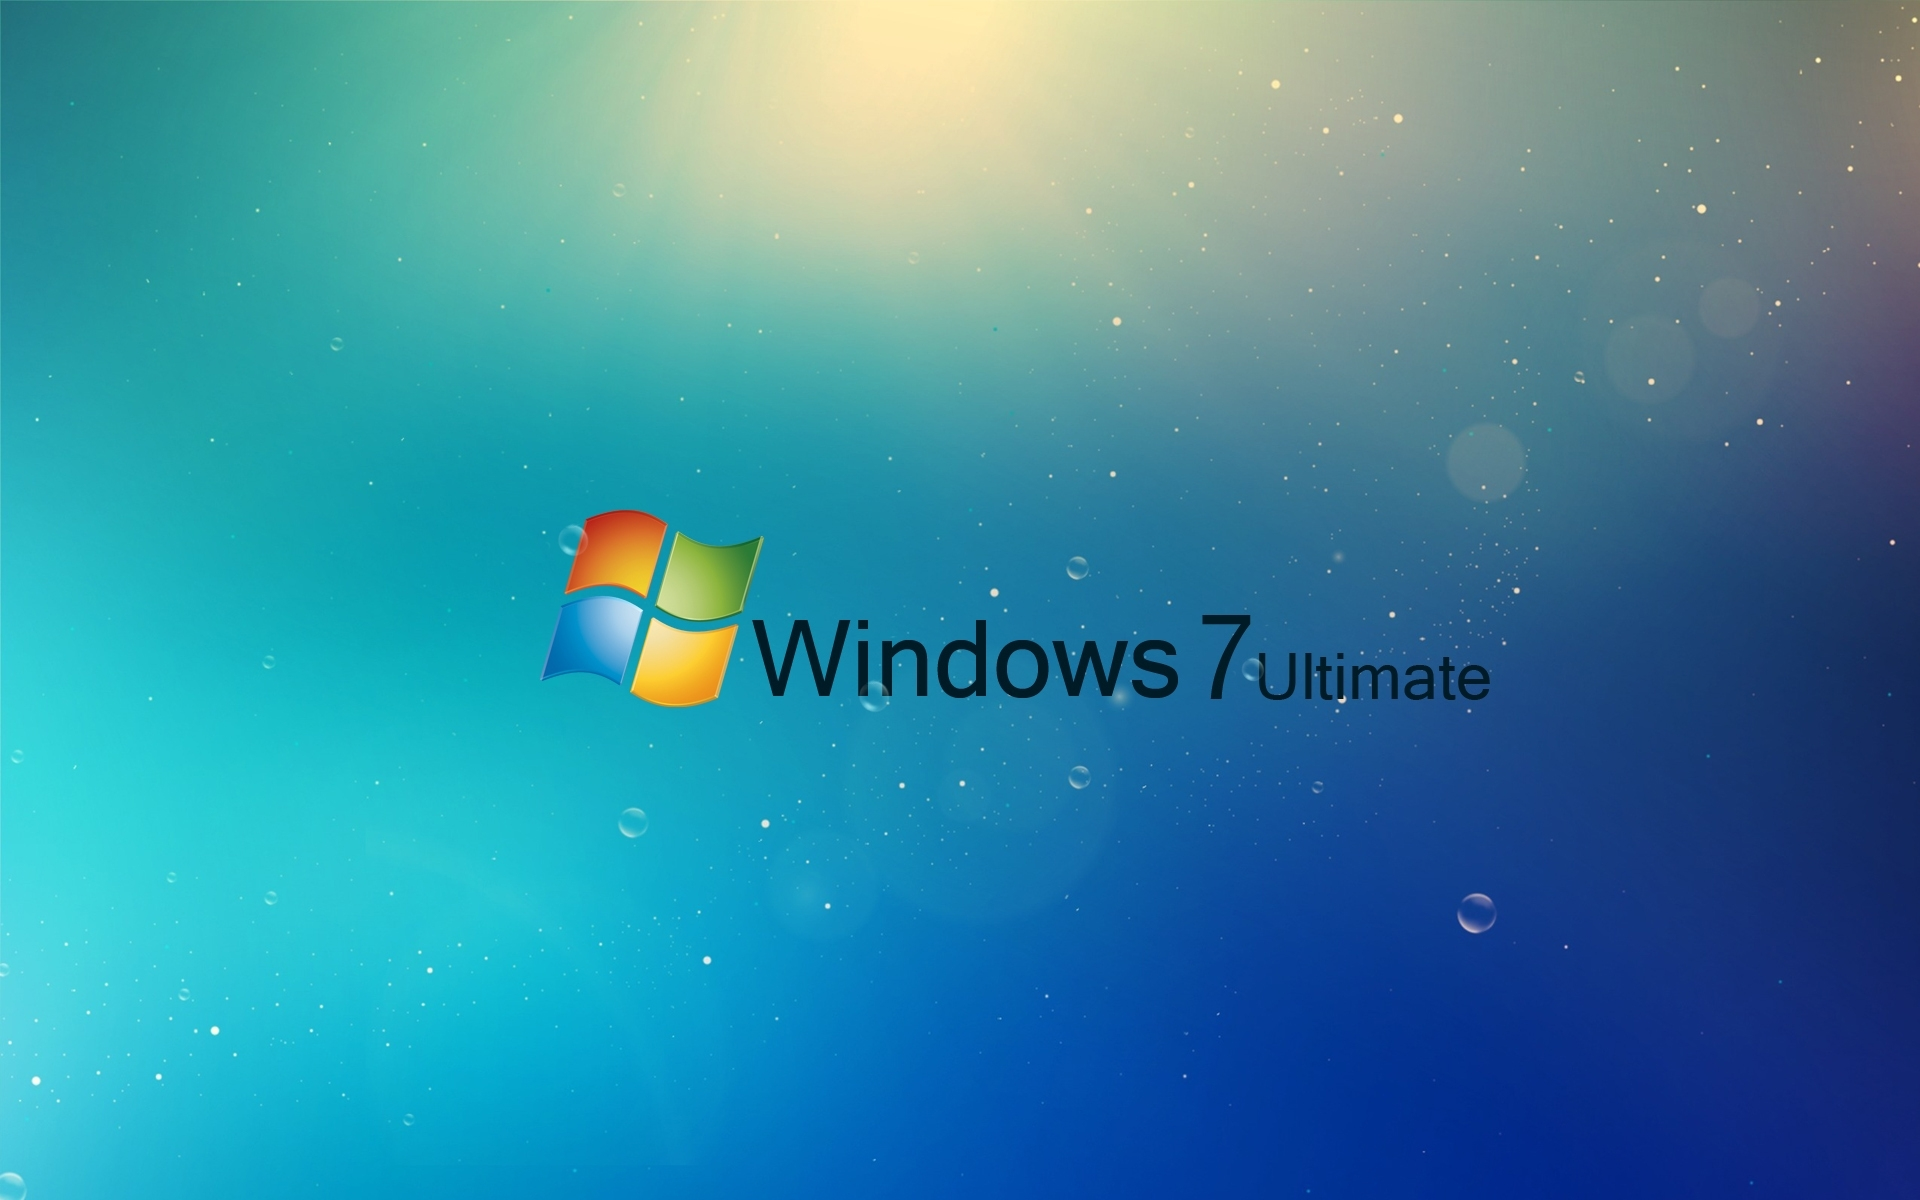 HD Blue Abstract Wallpapers for Windows 7 Ultimate 1920x1200